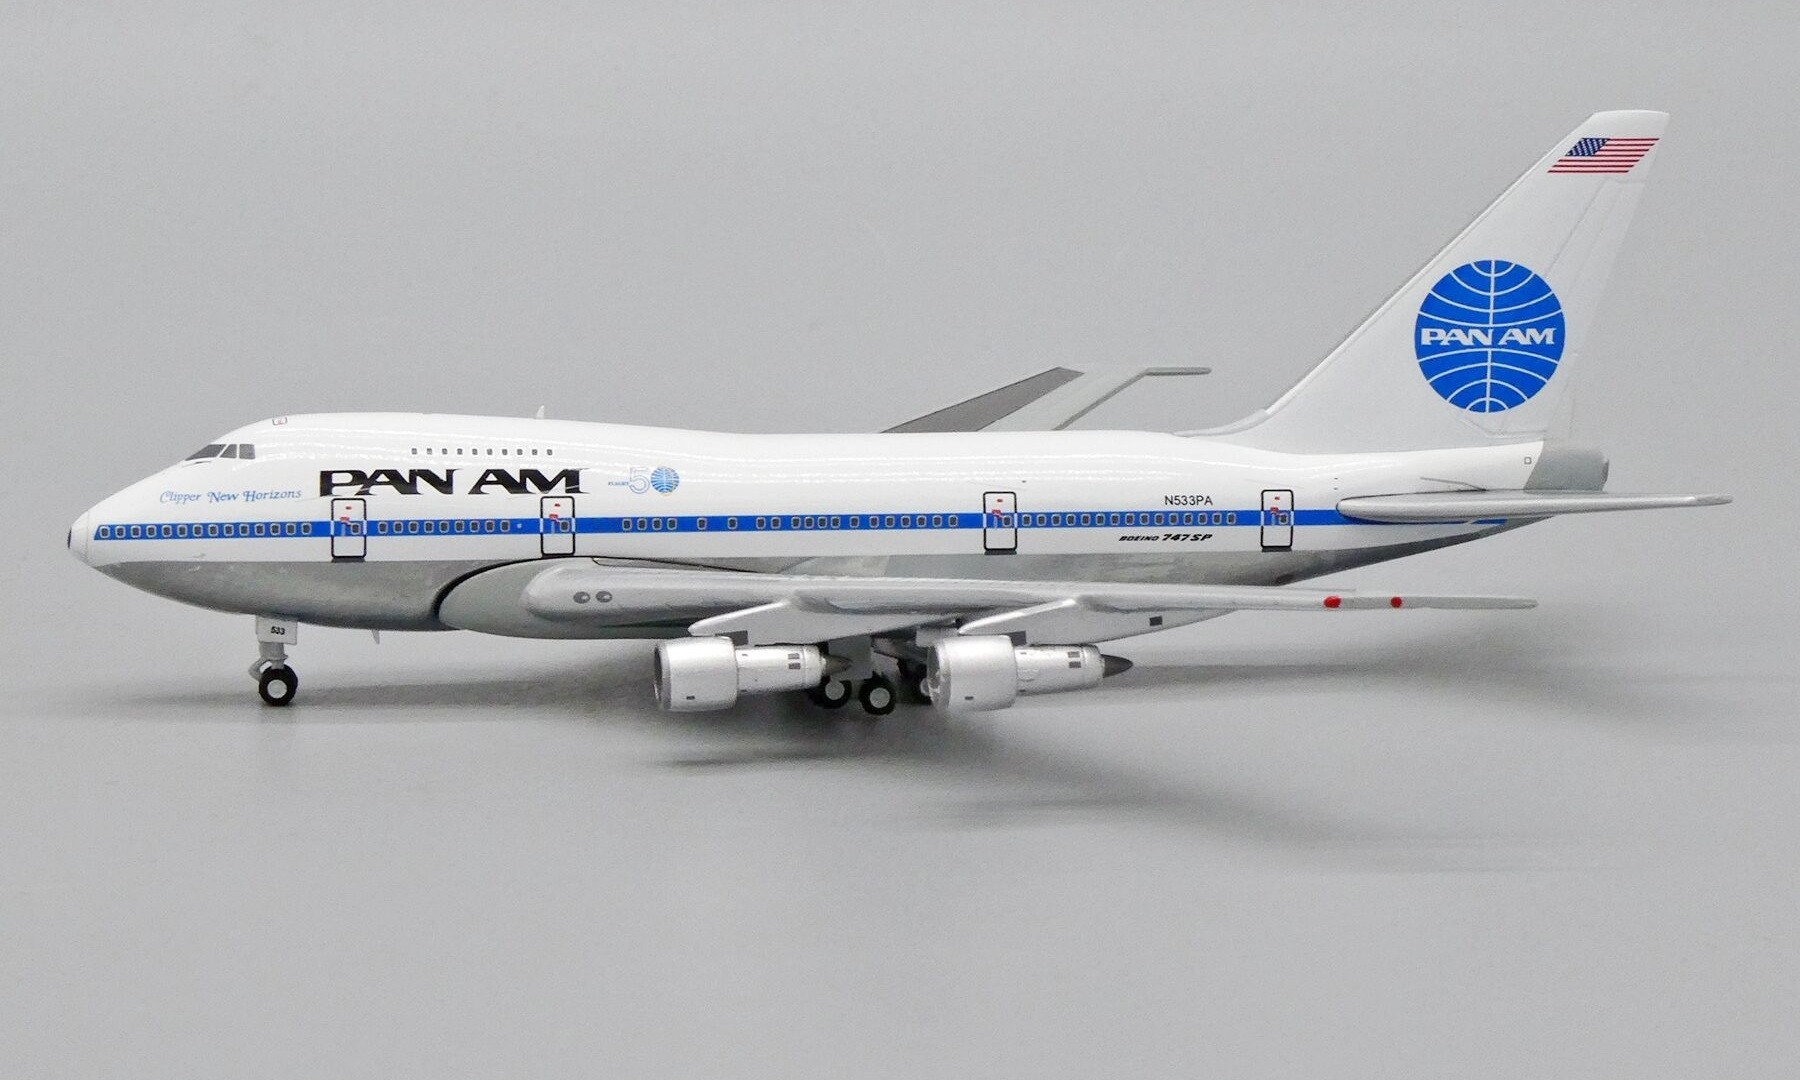 """Pan Am Boeing 747SP N533PA """"Clipper New Horizons"""" with Commemorative Flight 50 Logo (1:400)"""